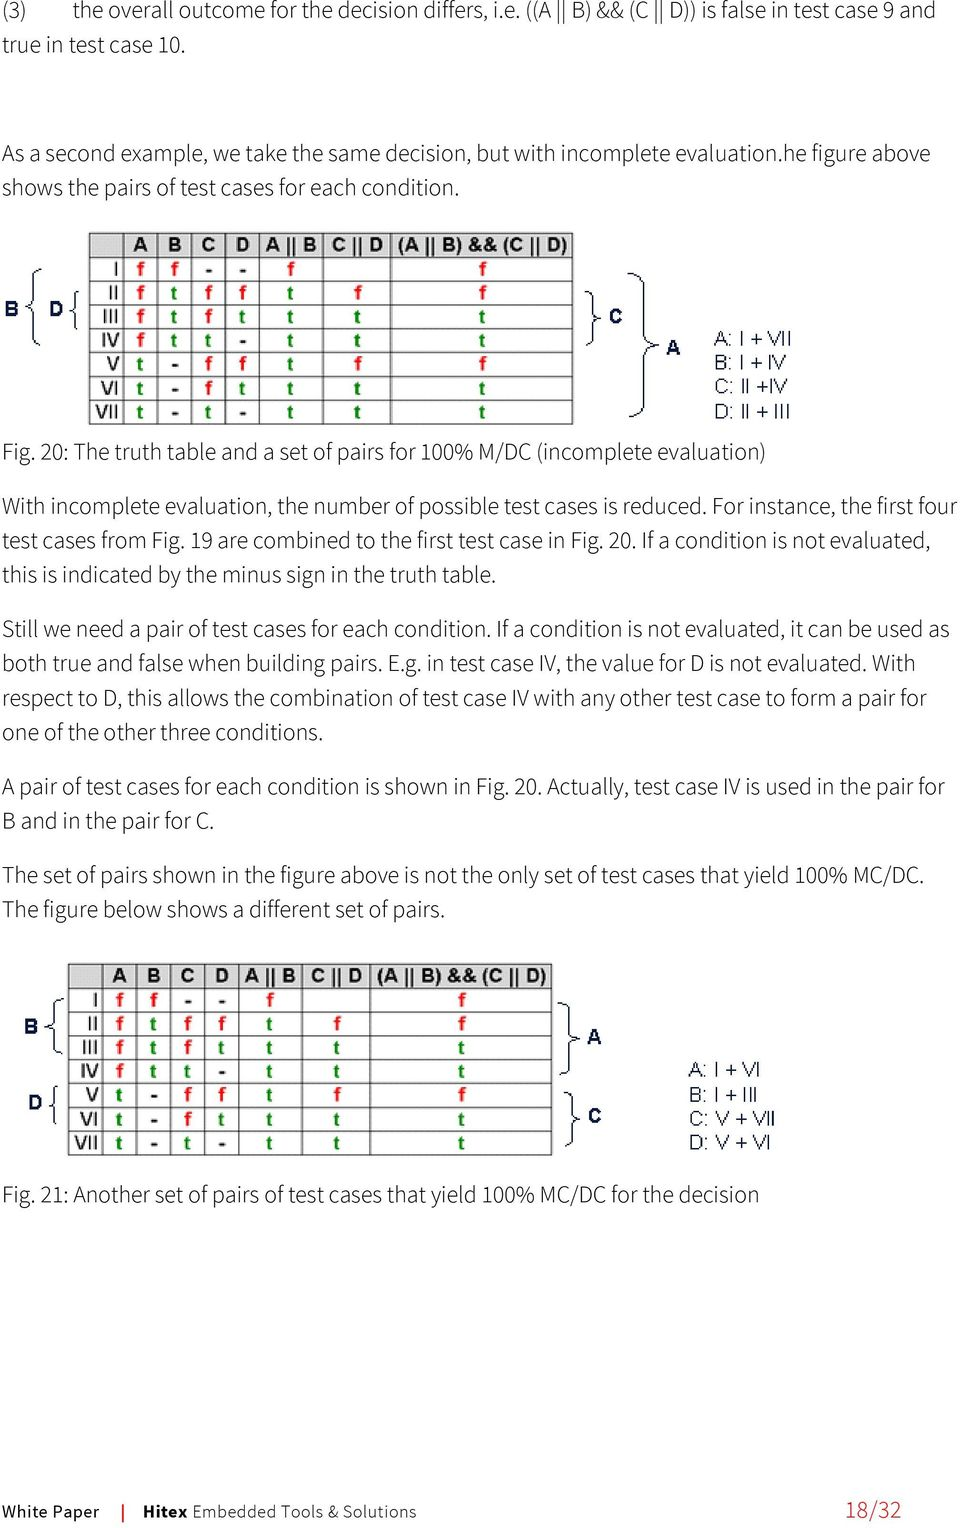 20: The truth table and a set of pairs for 100% M/DC (incomplete evaluation) With incomplete evaluation, the number of possible test cases is reduced. For instance, the first four test cases from Fig.